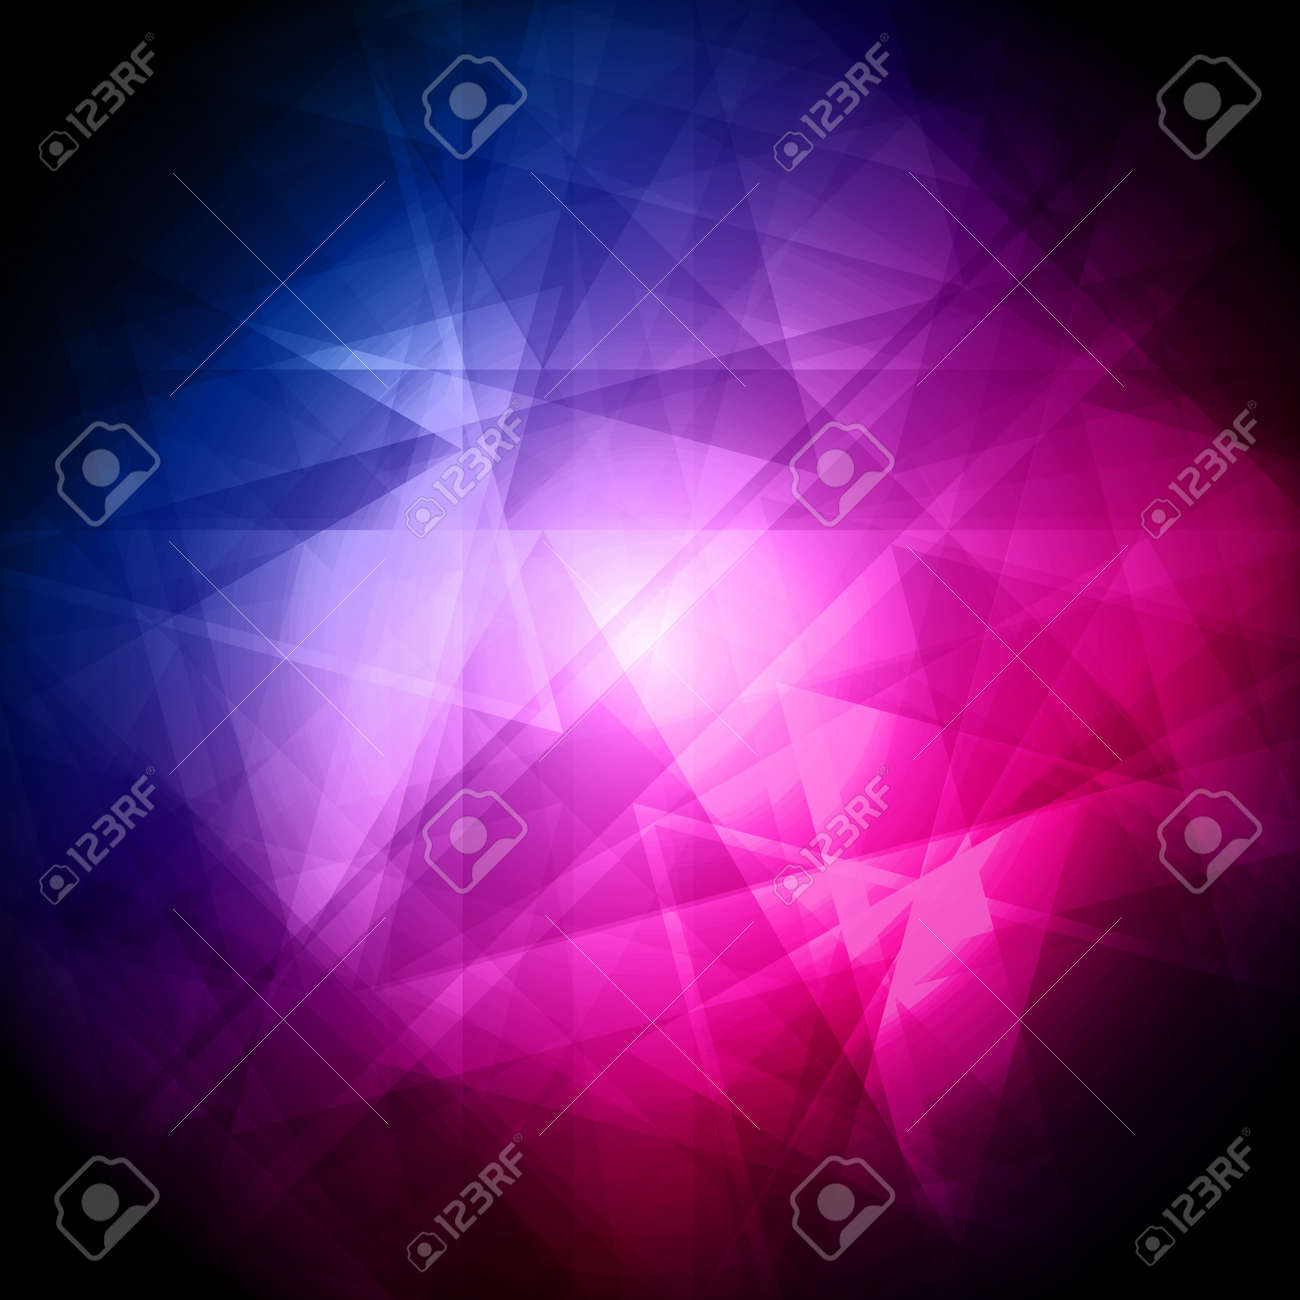 Abstract blue and pink background for design - vector illustration Stock Vector - 14429173